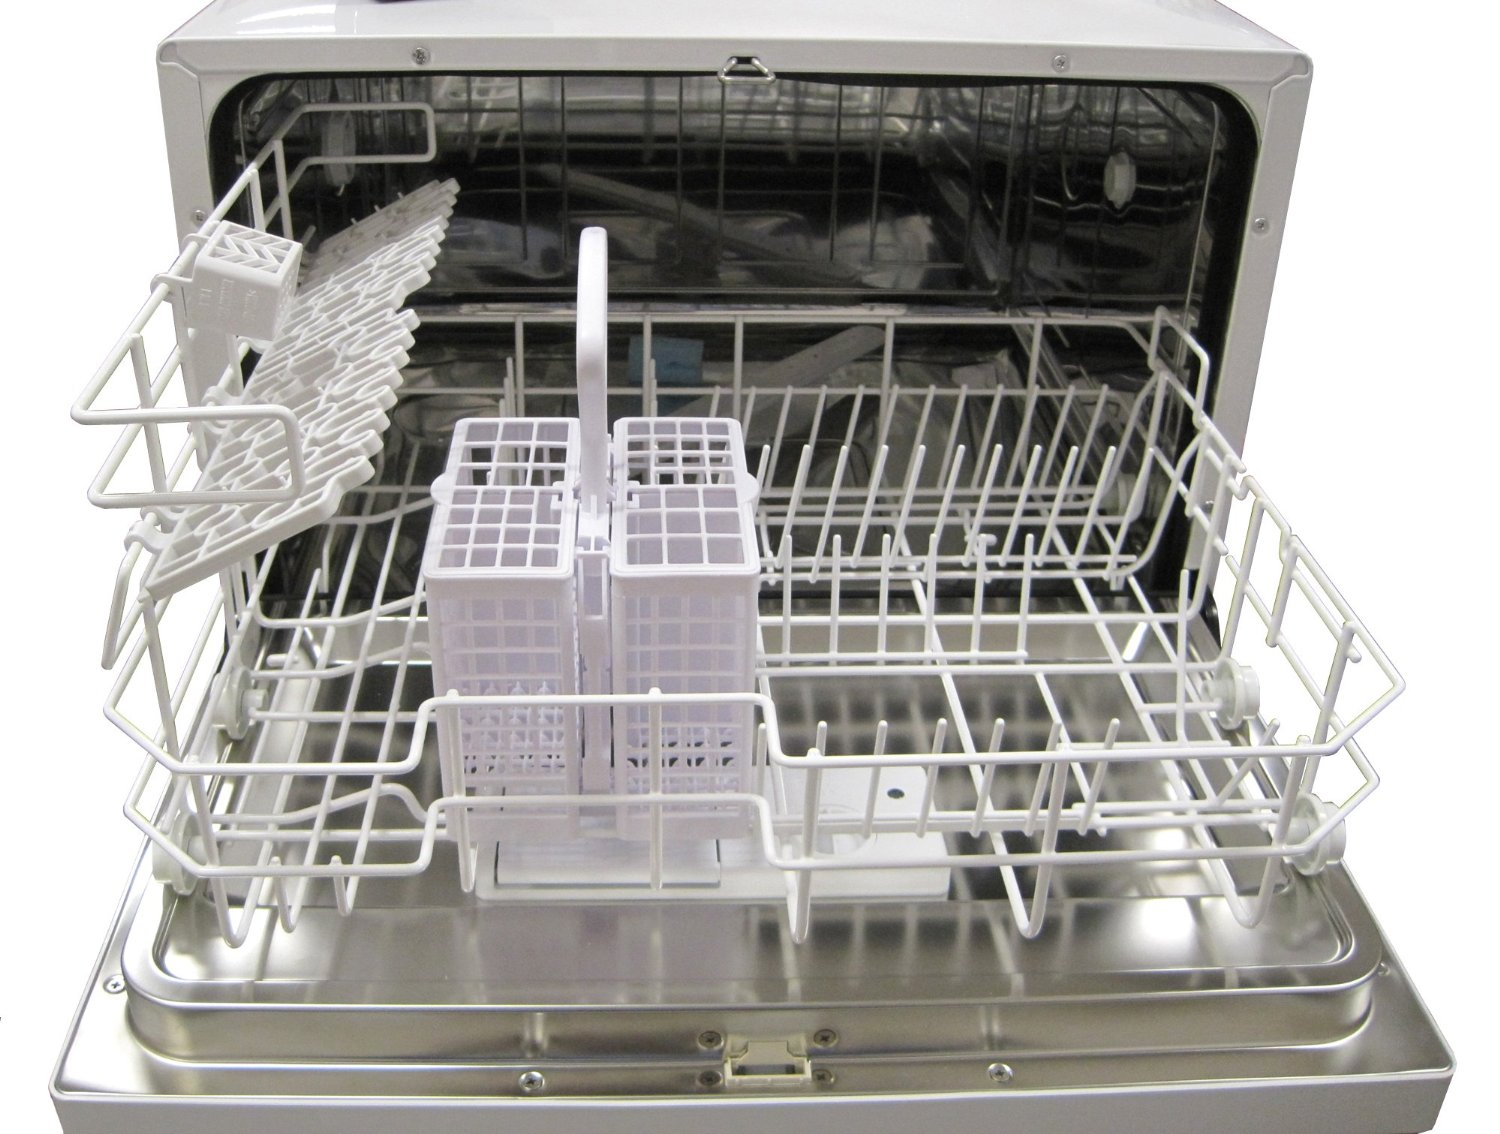 Review of SPT Countertop Dishwasher